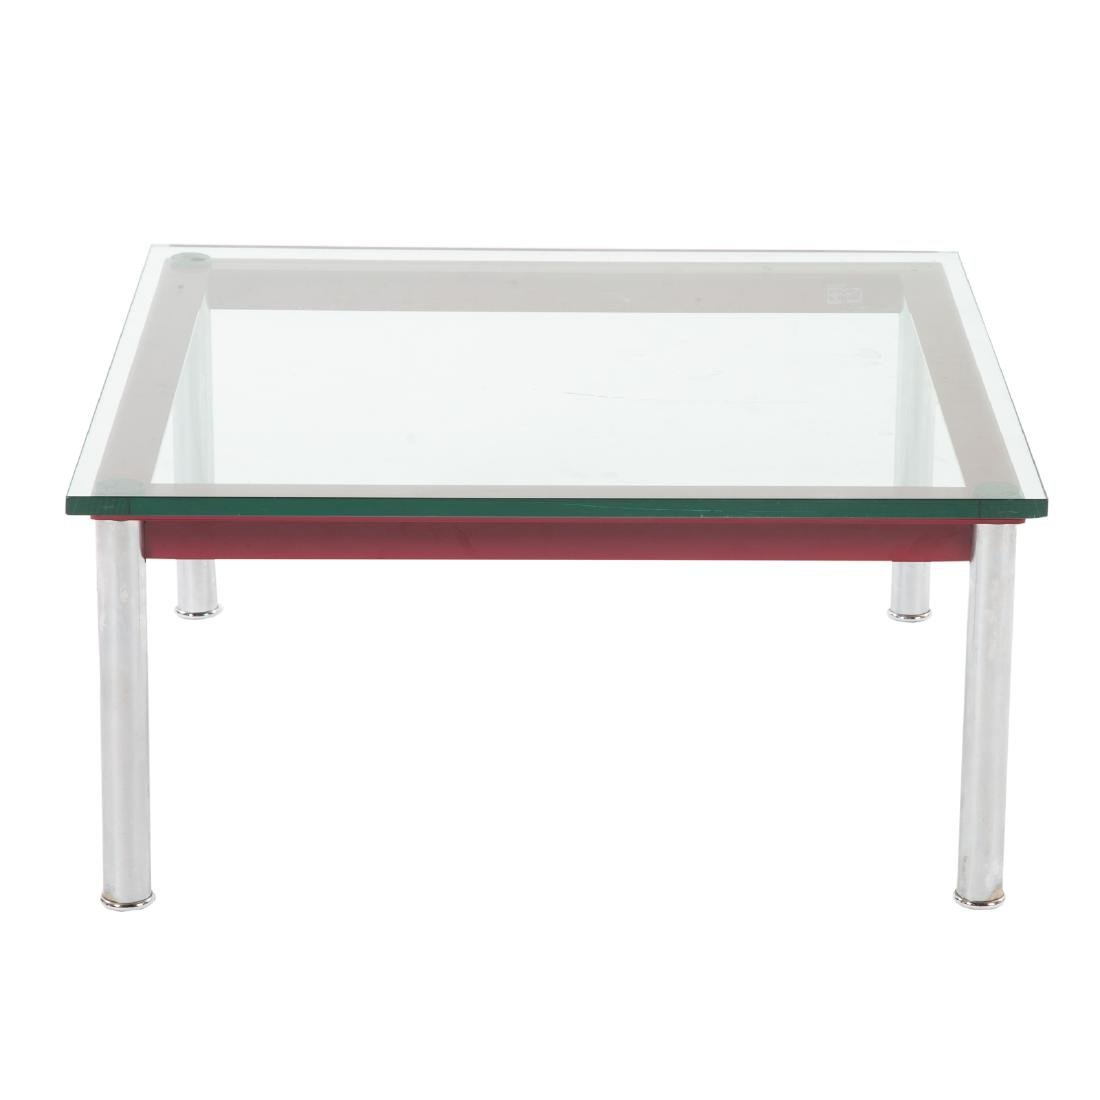 Le Corbusier painted metal & chrome coffee table - 2